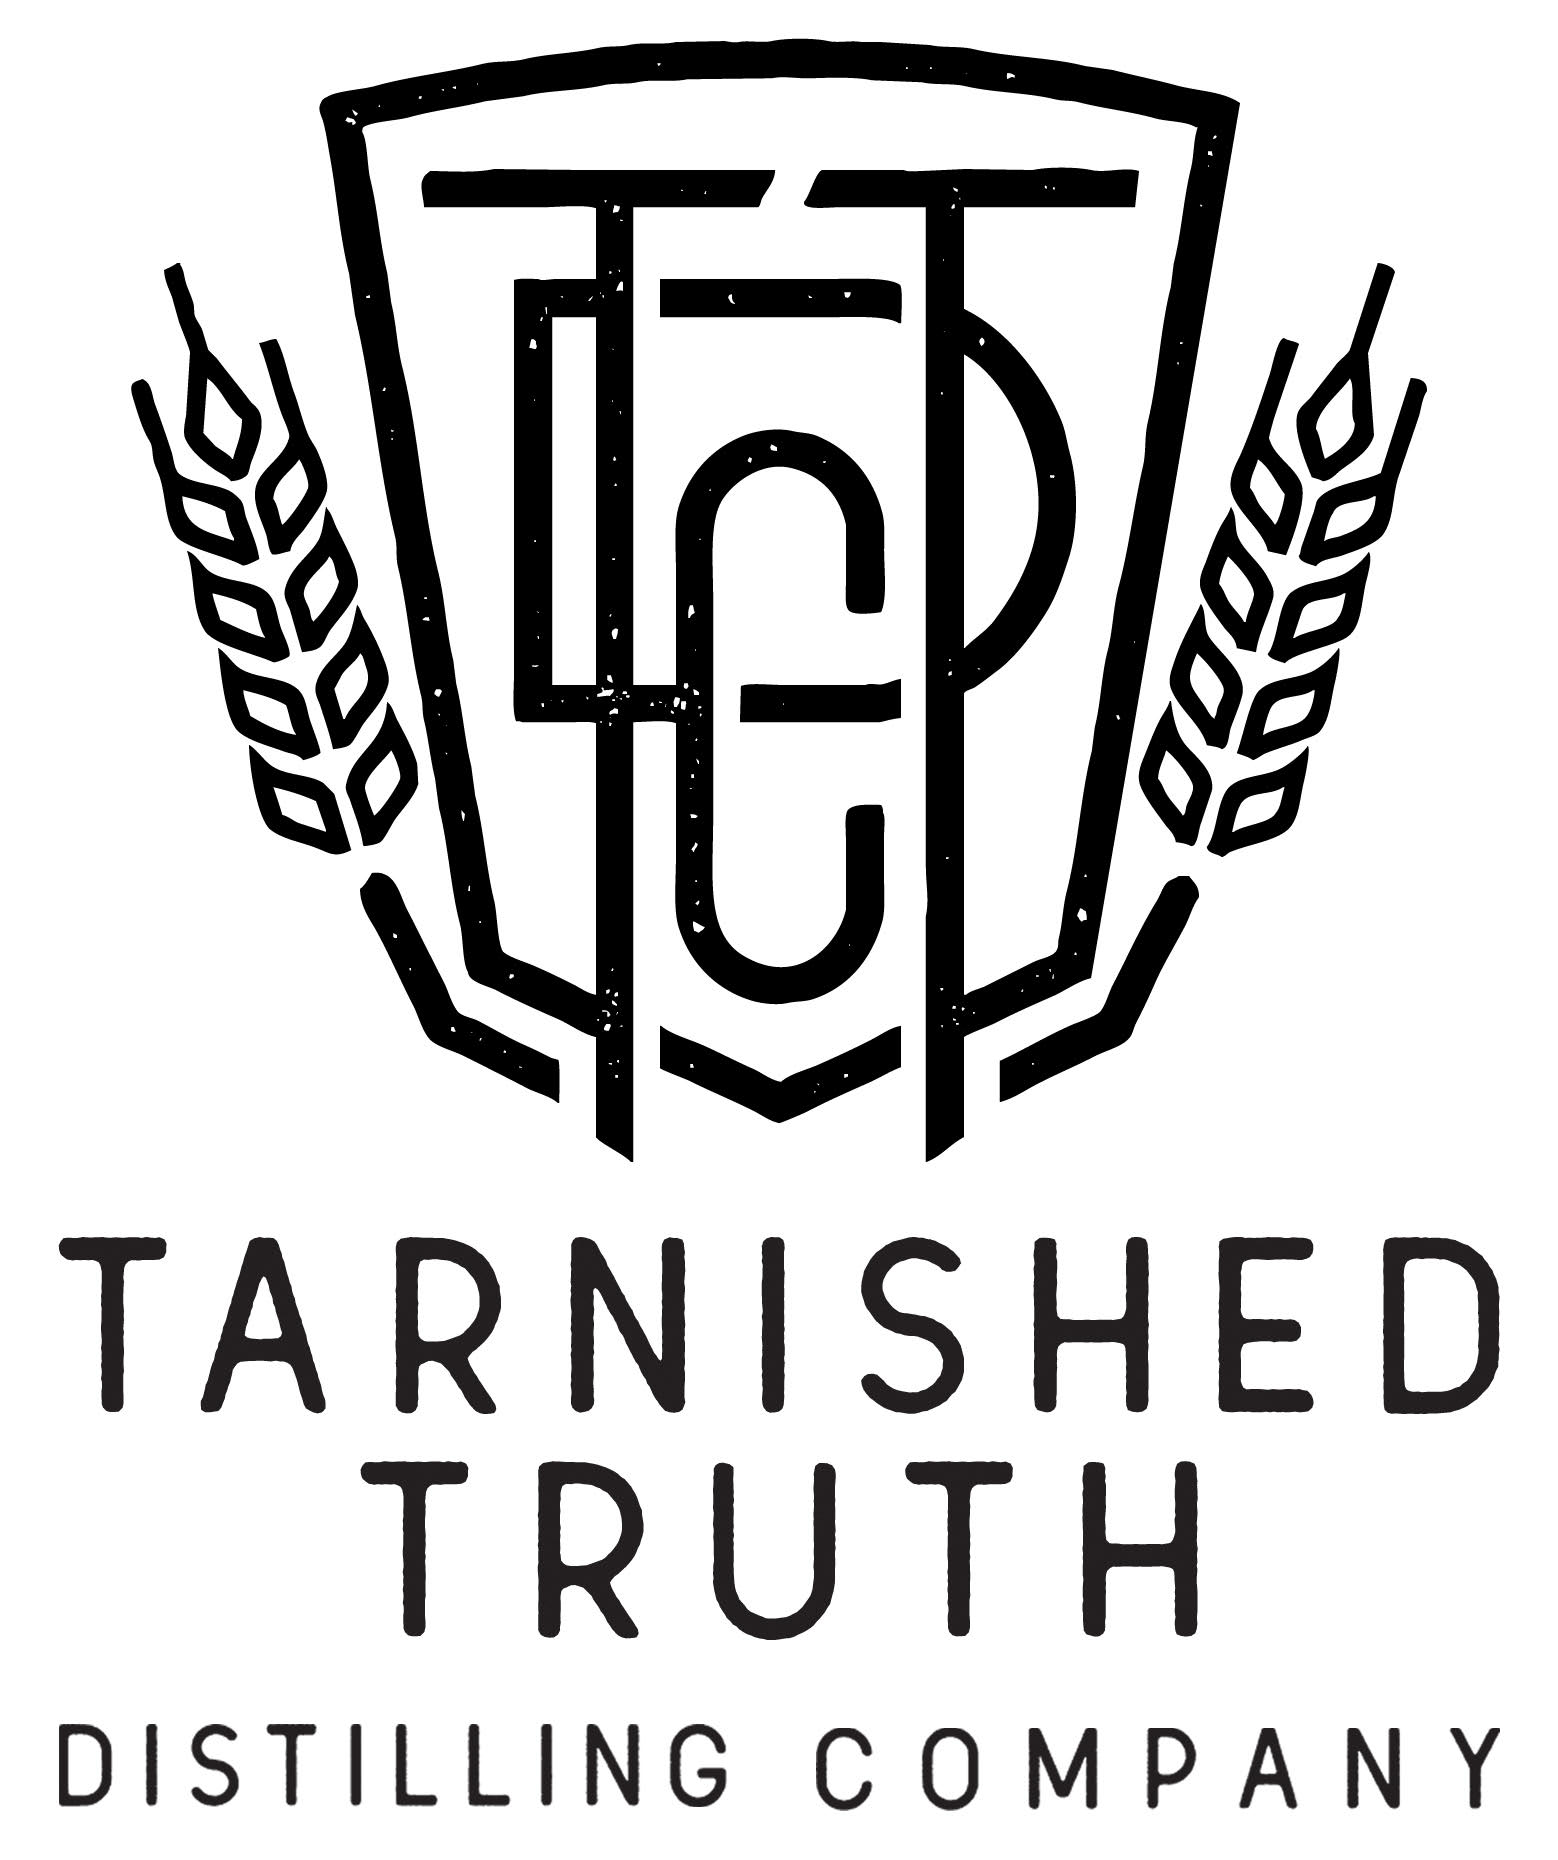 Tarnished Truth